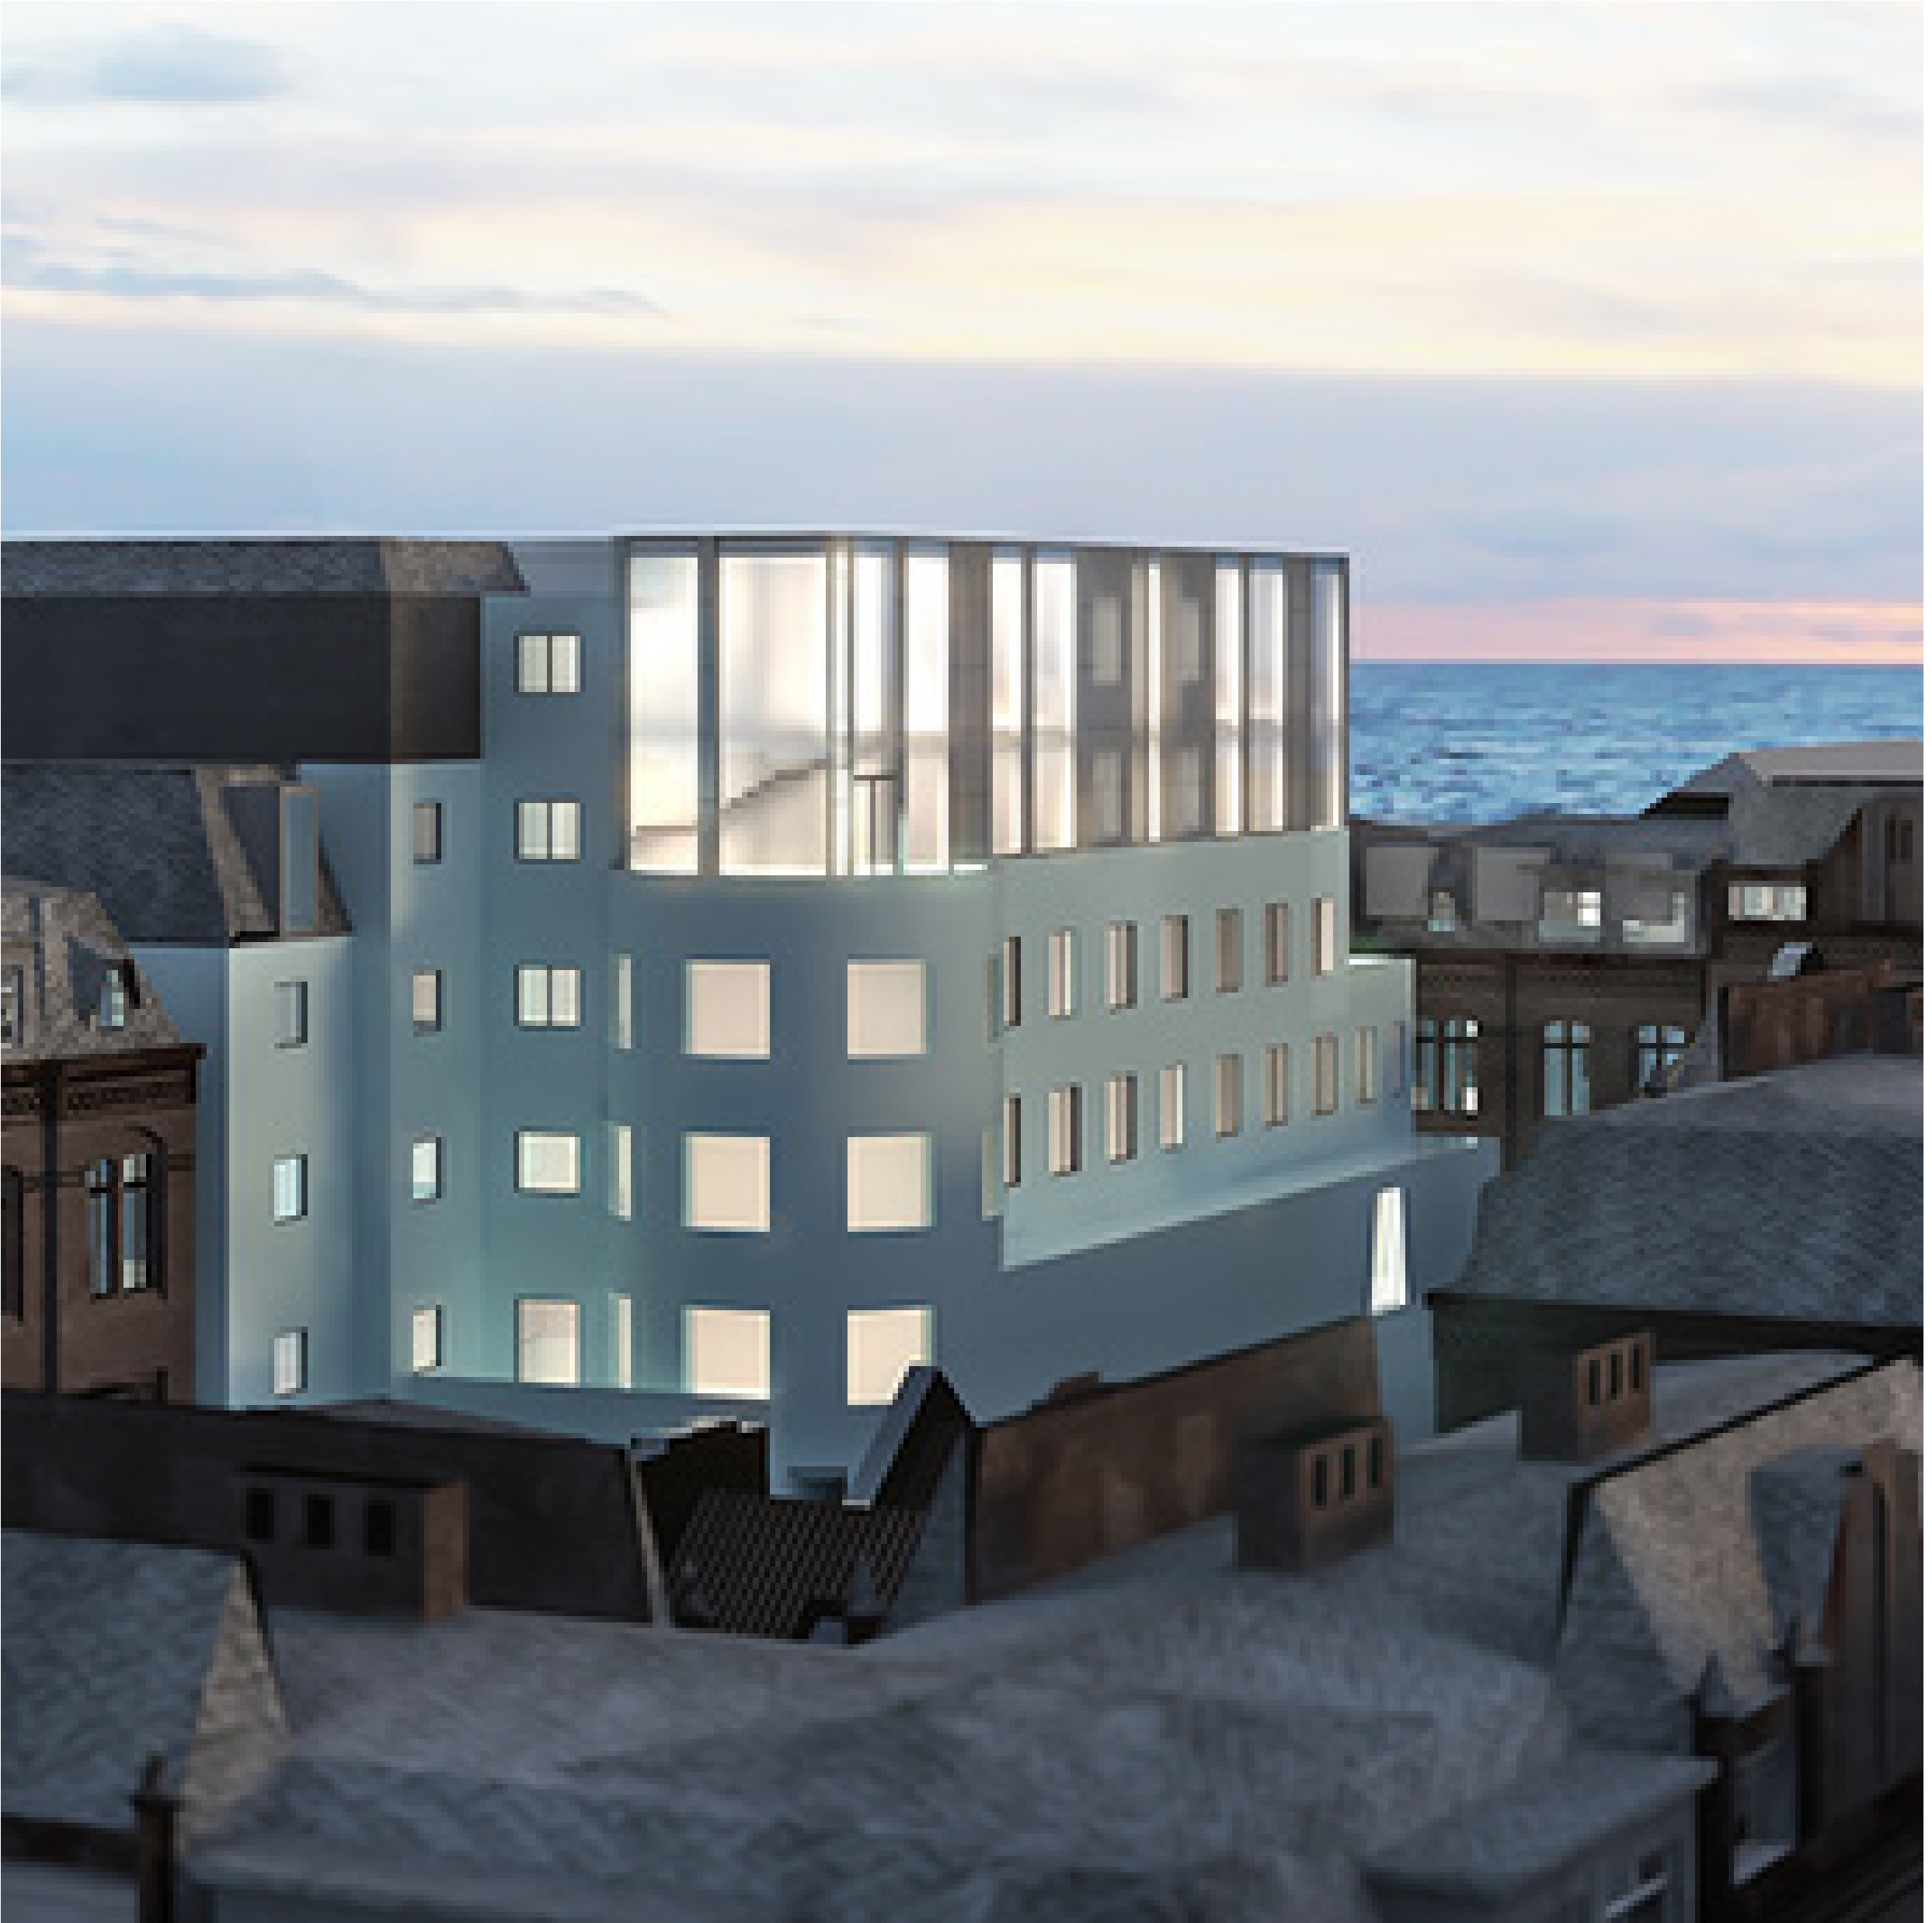 Swimwear, lingerie and clothing brand, Pour Moi, commences fit-out to luxury new offices in Brighton